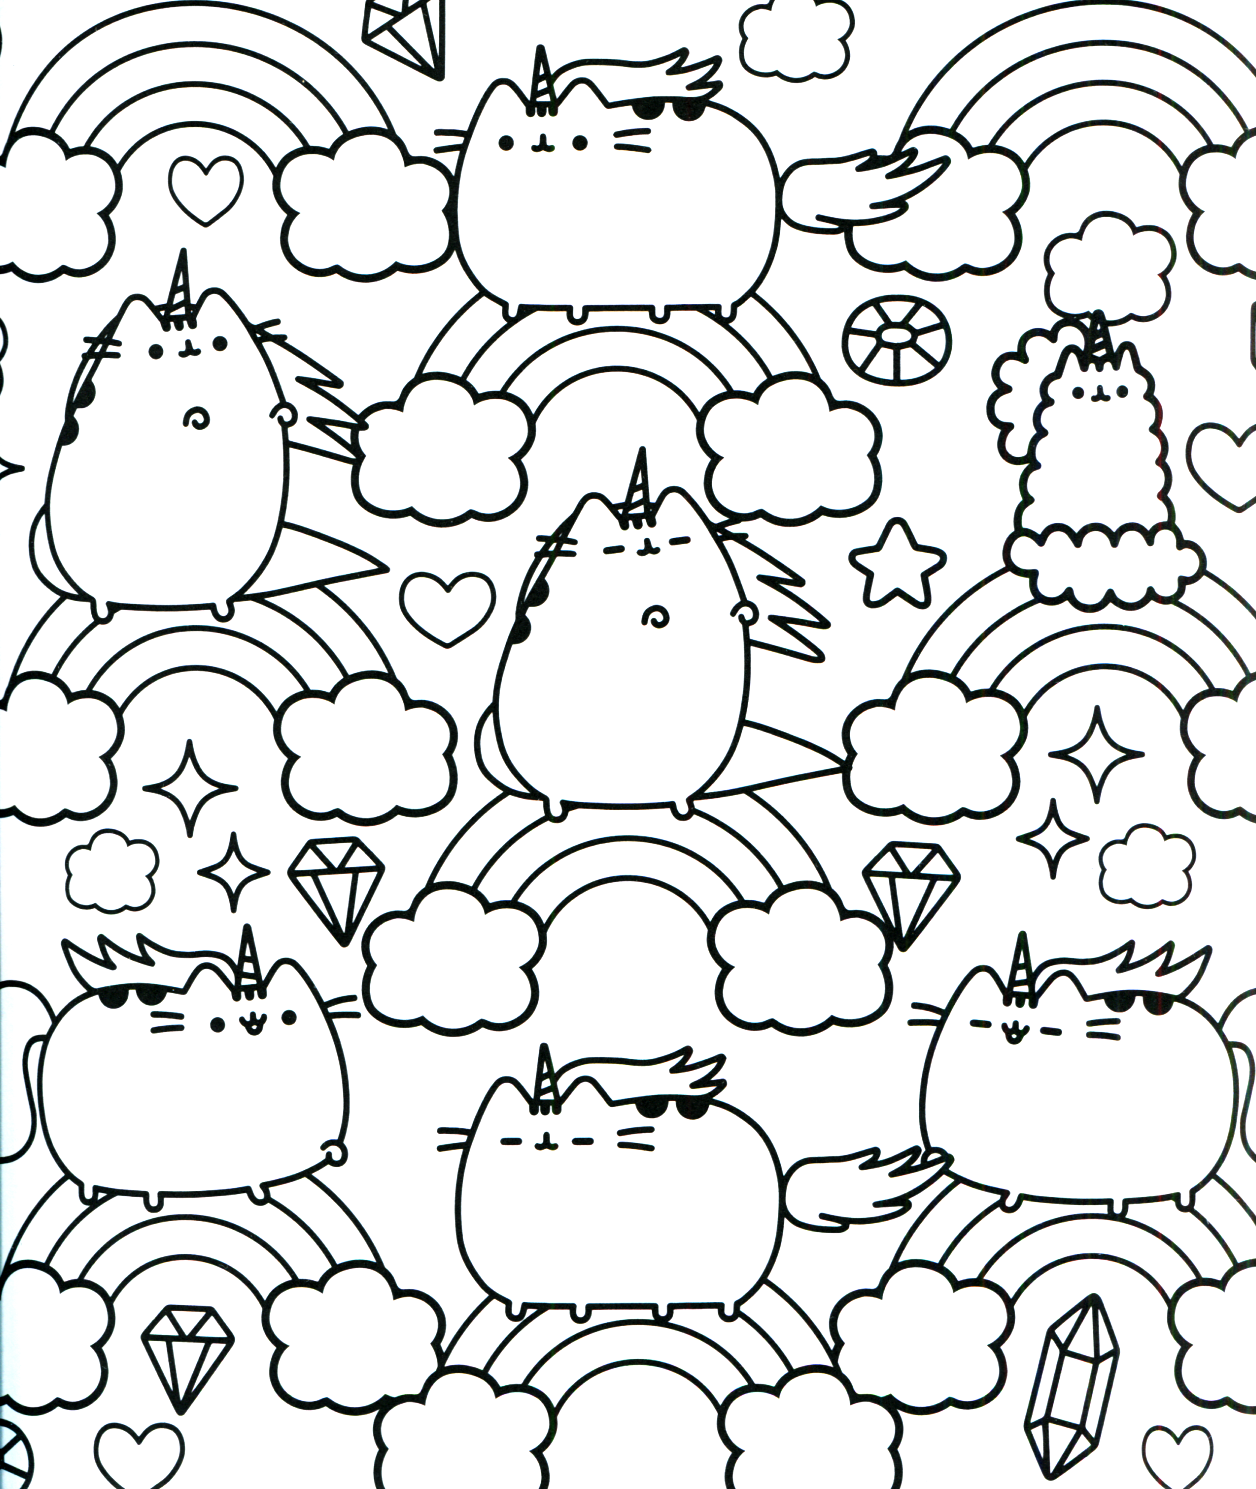 Pusheen Coloring Book Pusheen Pusheen the Cat | Caméo | Pinterest ...